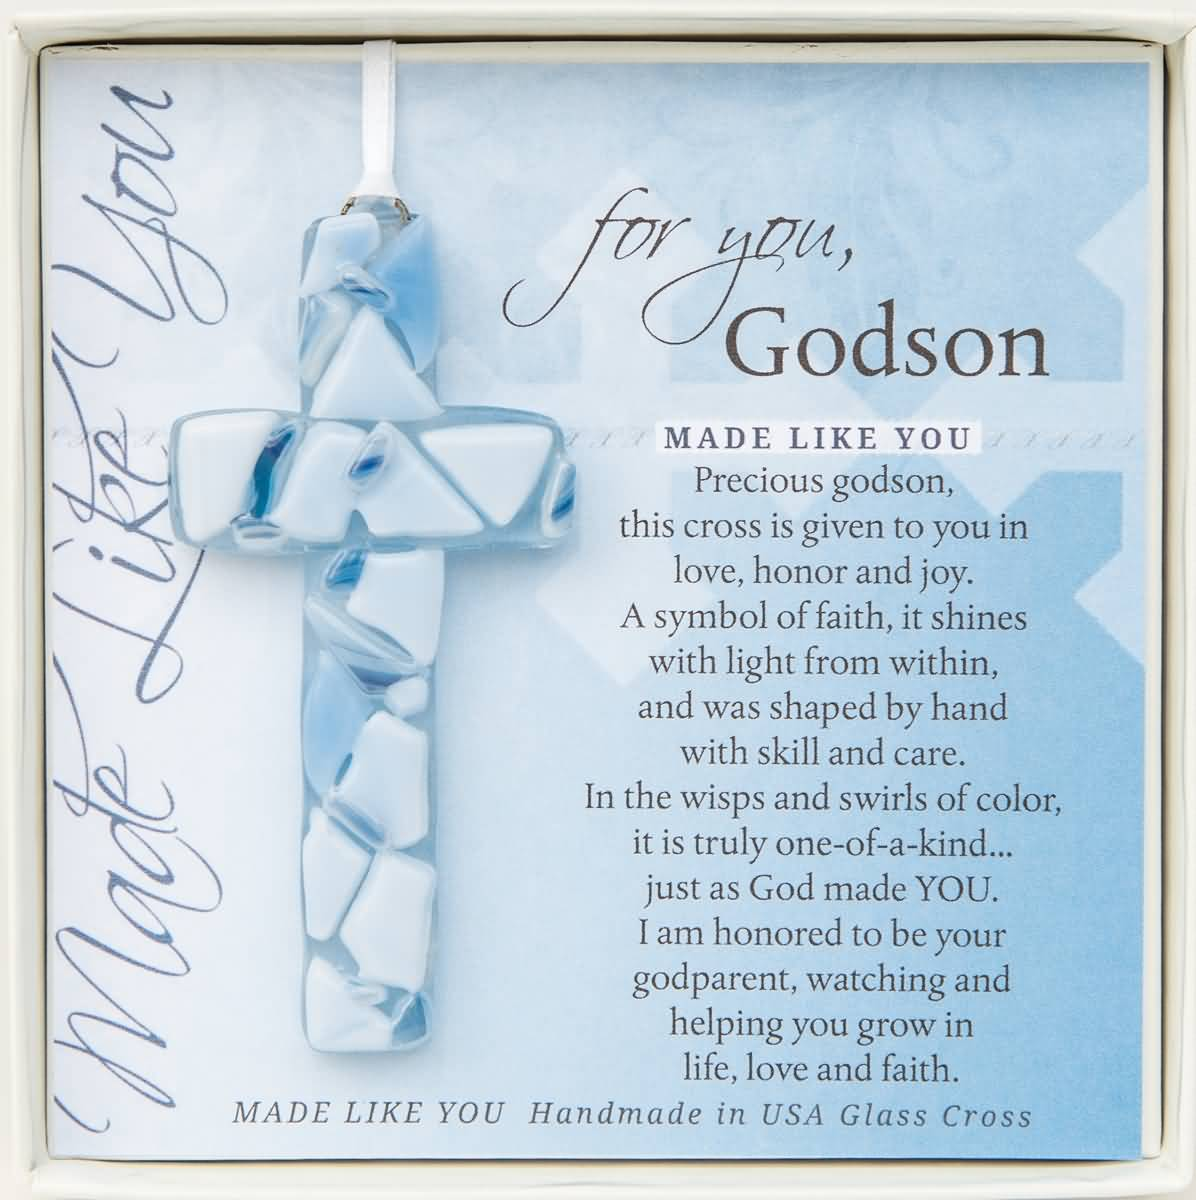 Happy birthday greetings  for Godson made like you from father